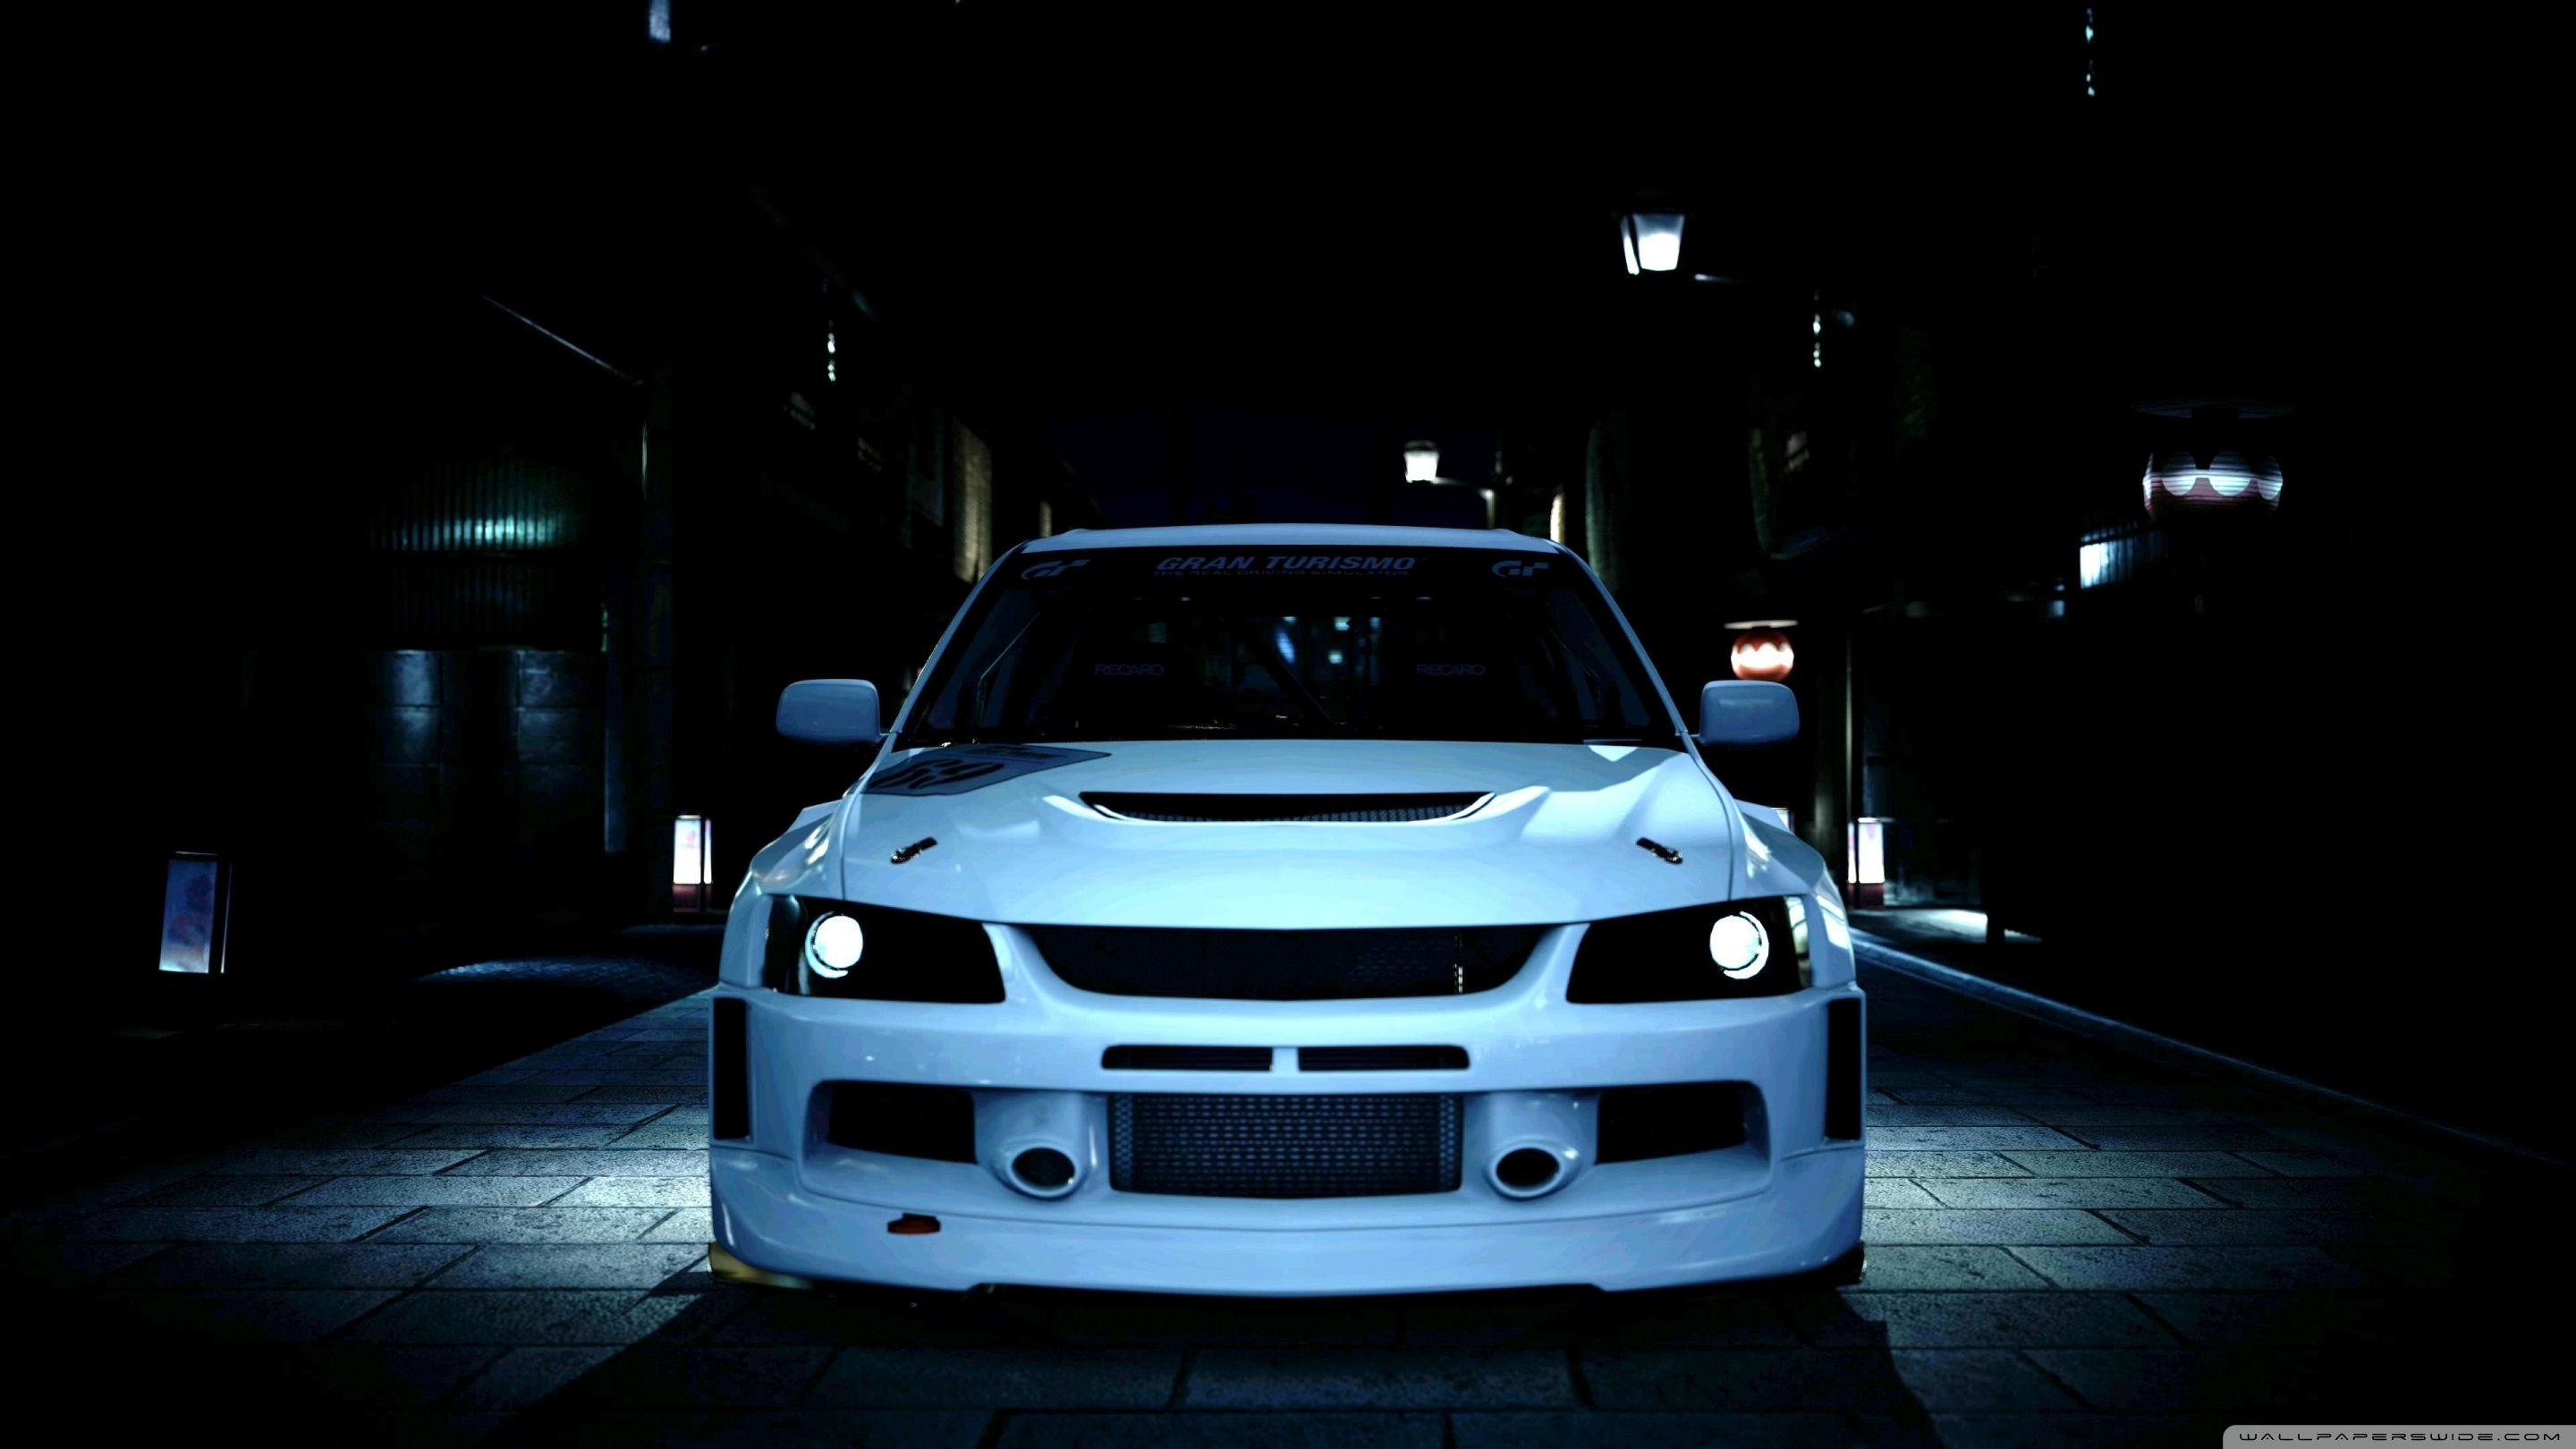 gran turismo 5 mitsubishi evolution wallpaper | wallpaperlists